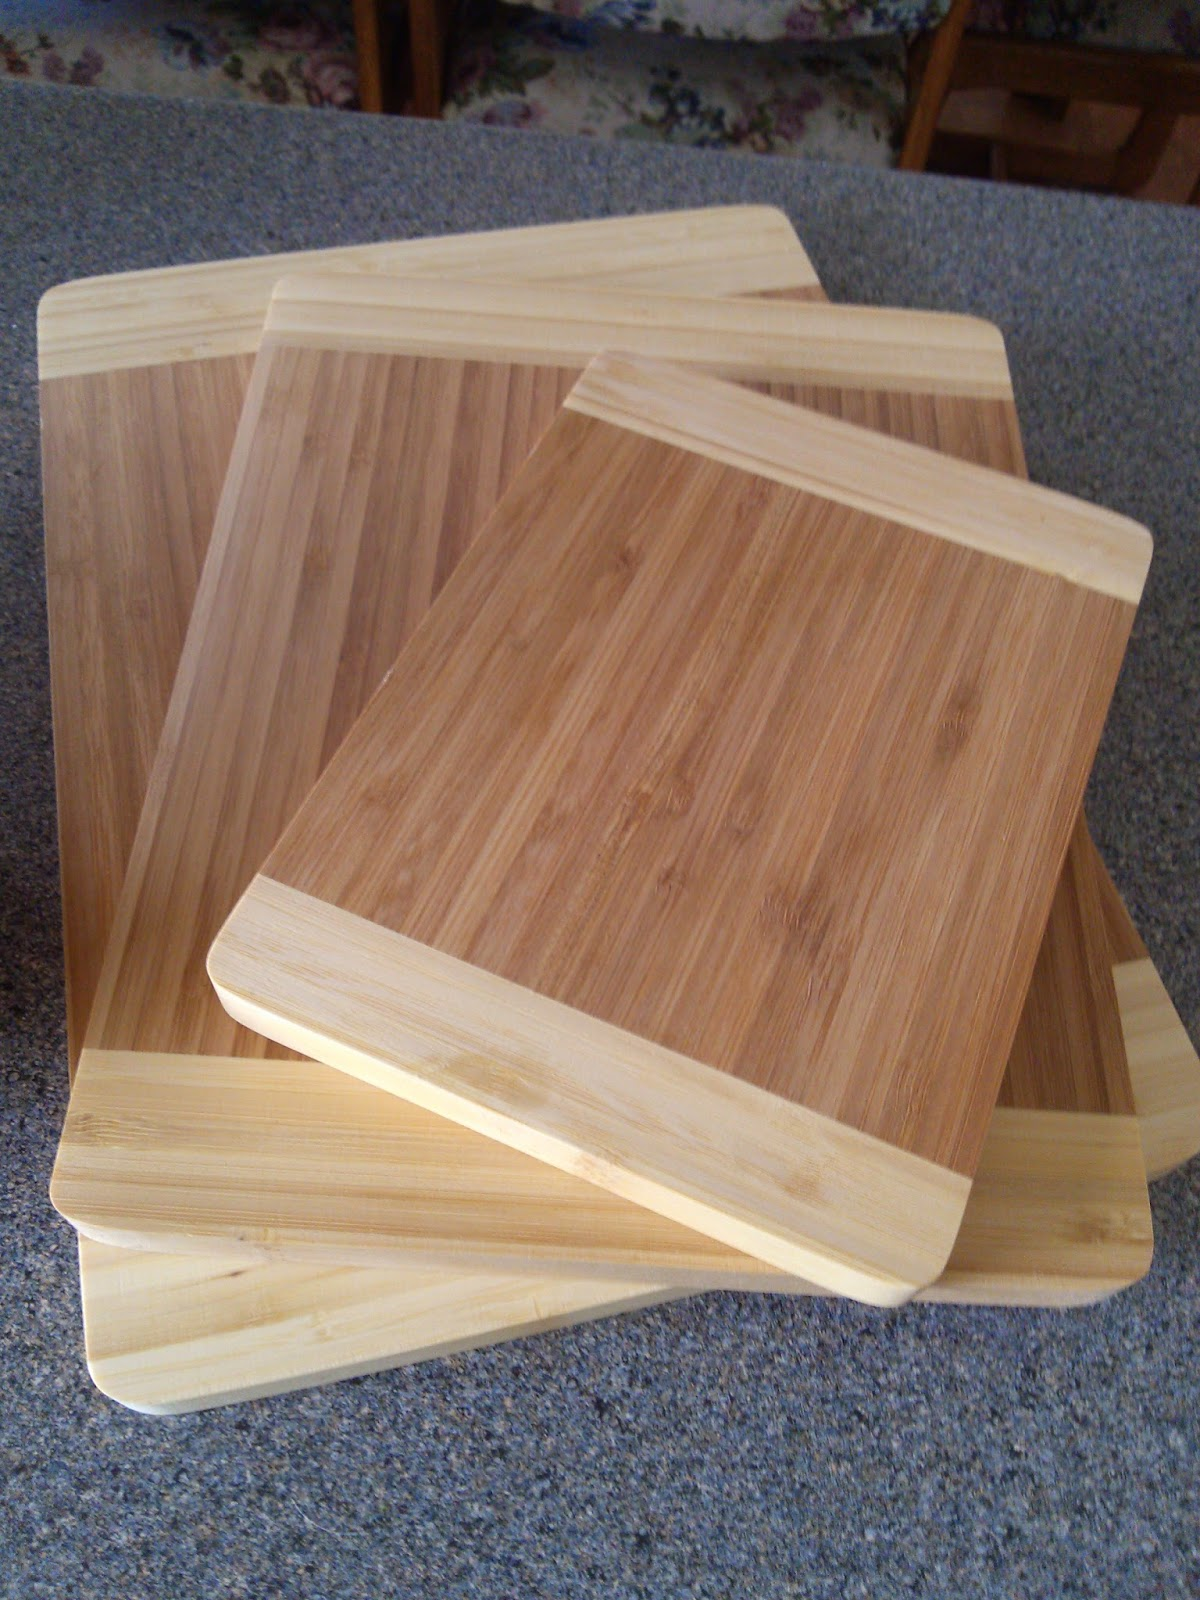 Bamboo Styles 3-Piece Cutting Board Set Review